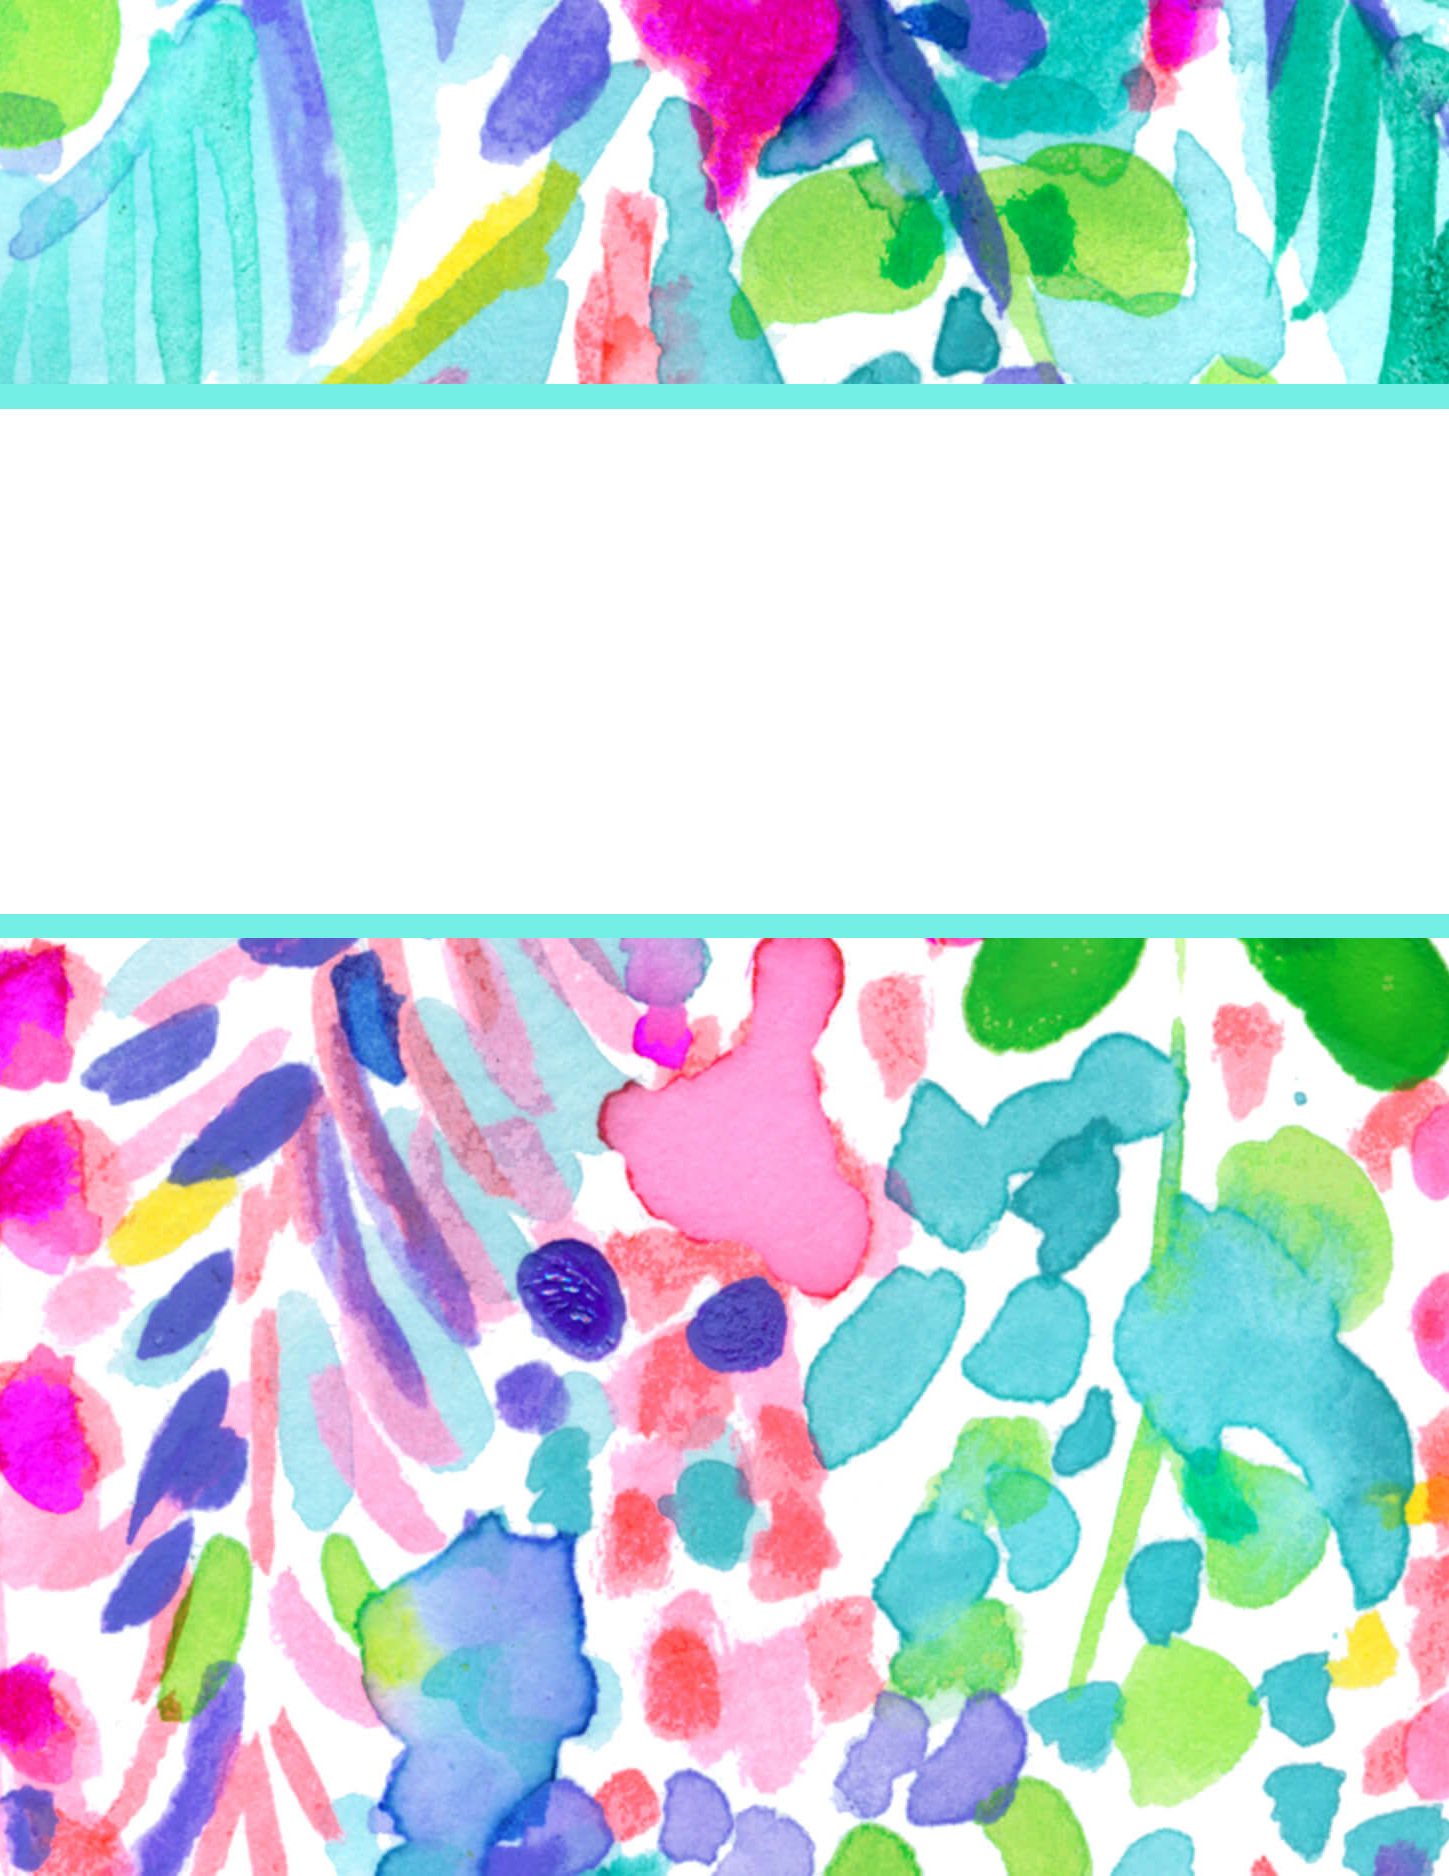 Preppy and classic style blogger Eva Phan of Eva Darling shares free printable Lilly Pulitzer binder covers for back to school cute school supplies college high school catch the wave print sea life watercolor art aquatic download organization dividers